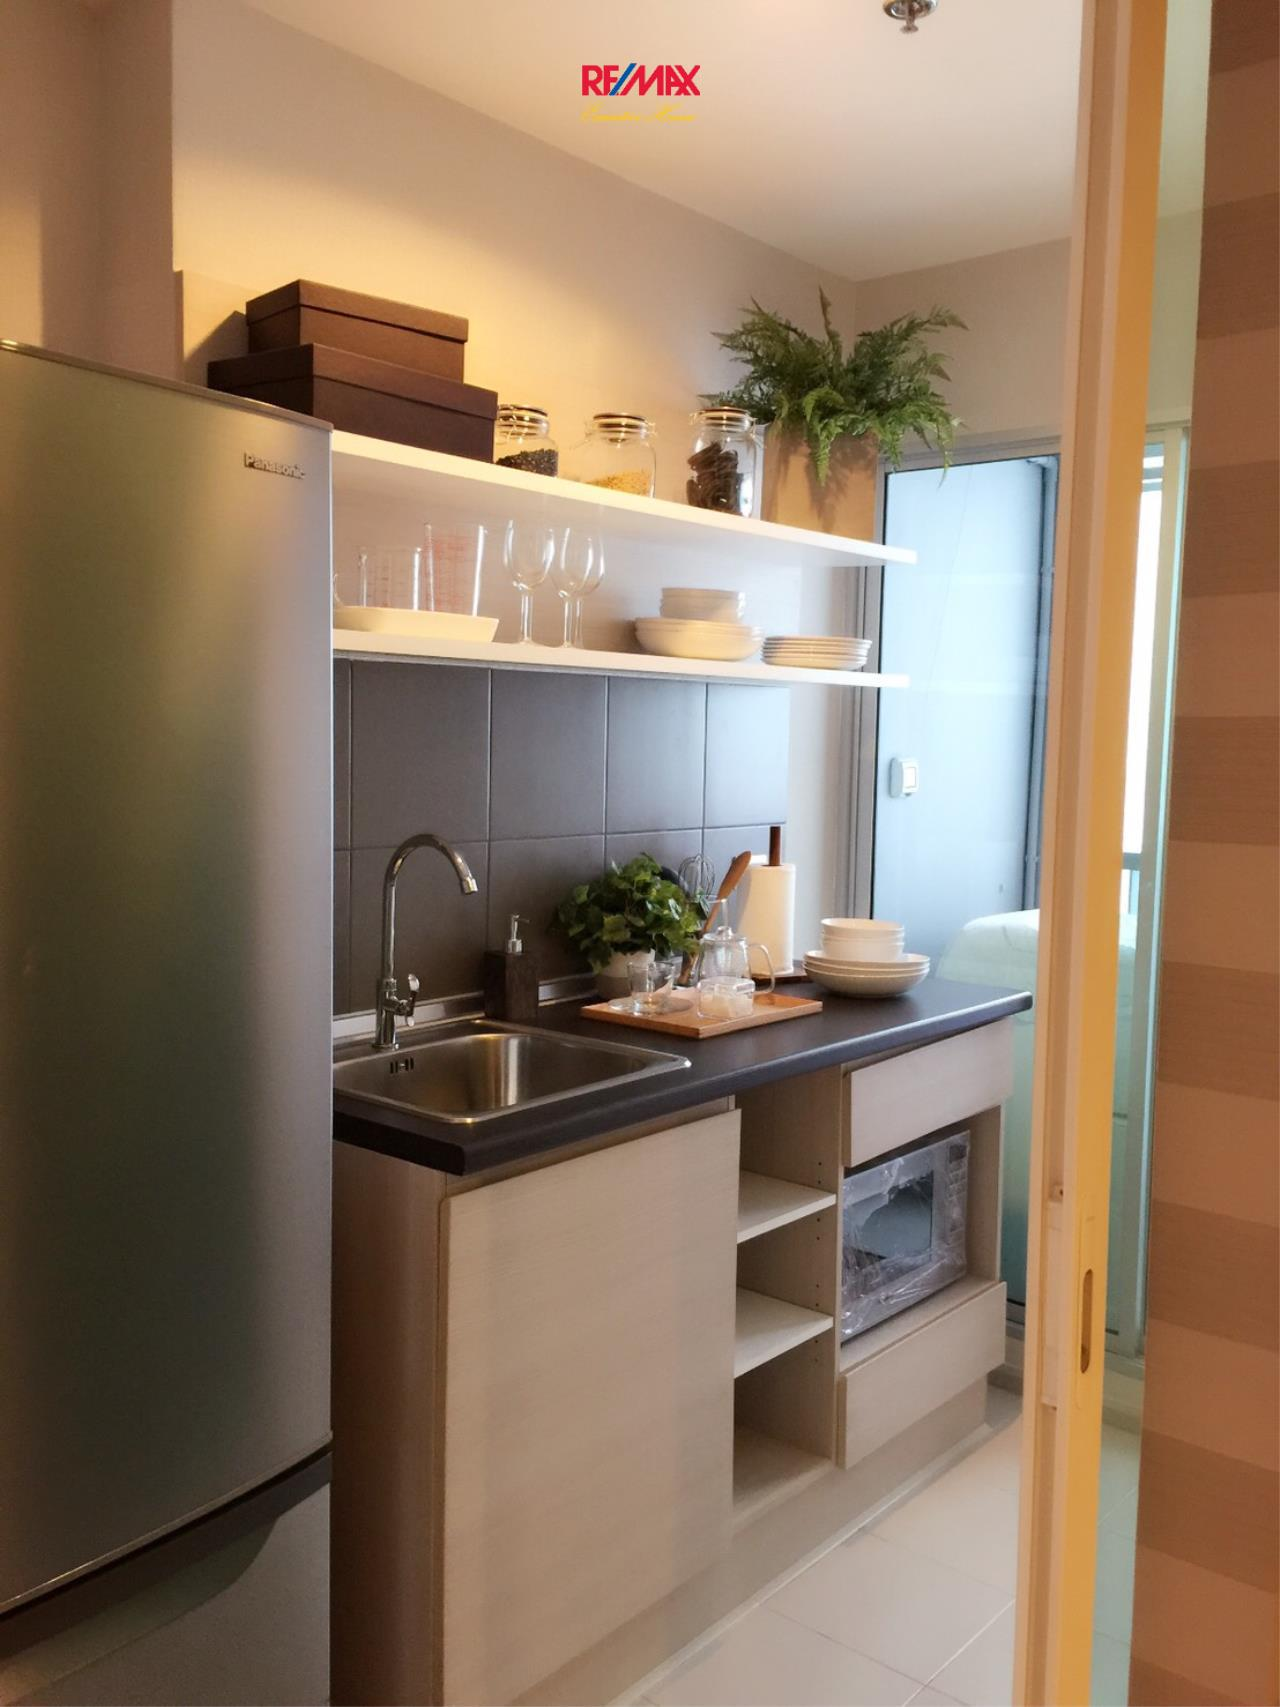 RE/MAX Executive Homes Agency's Stunning 2 Bedroom for Rent and Sale Aspire Ratchada - Wongsawang 4